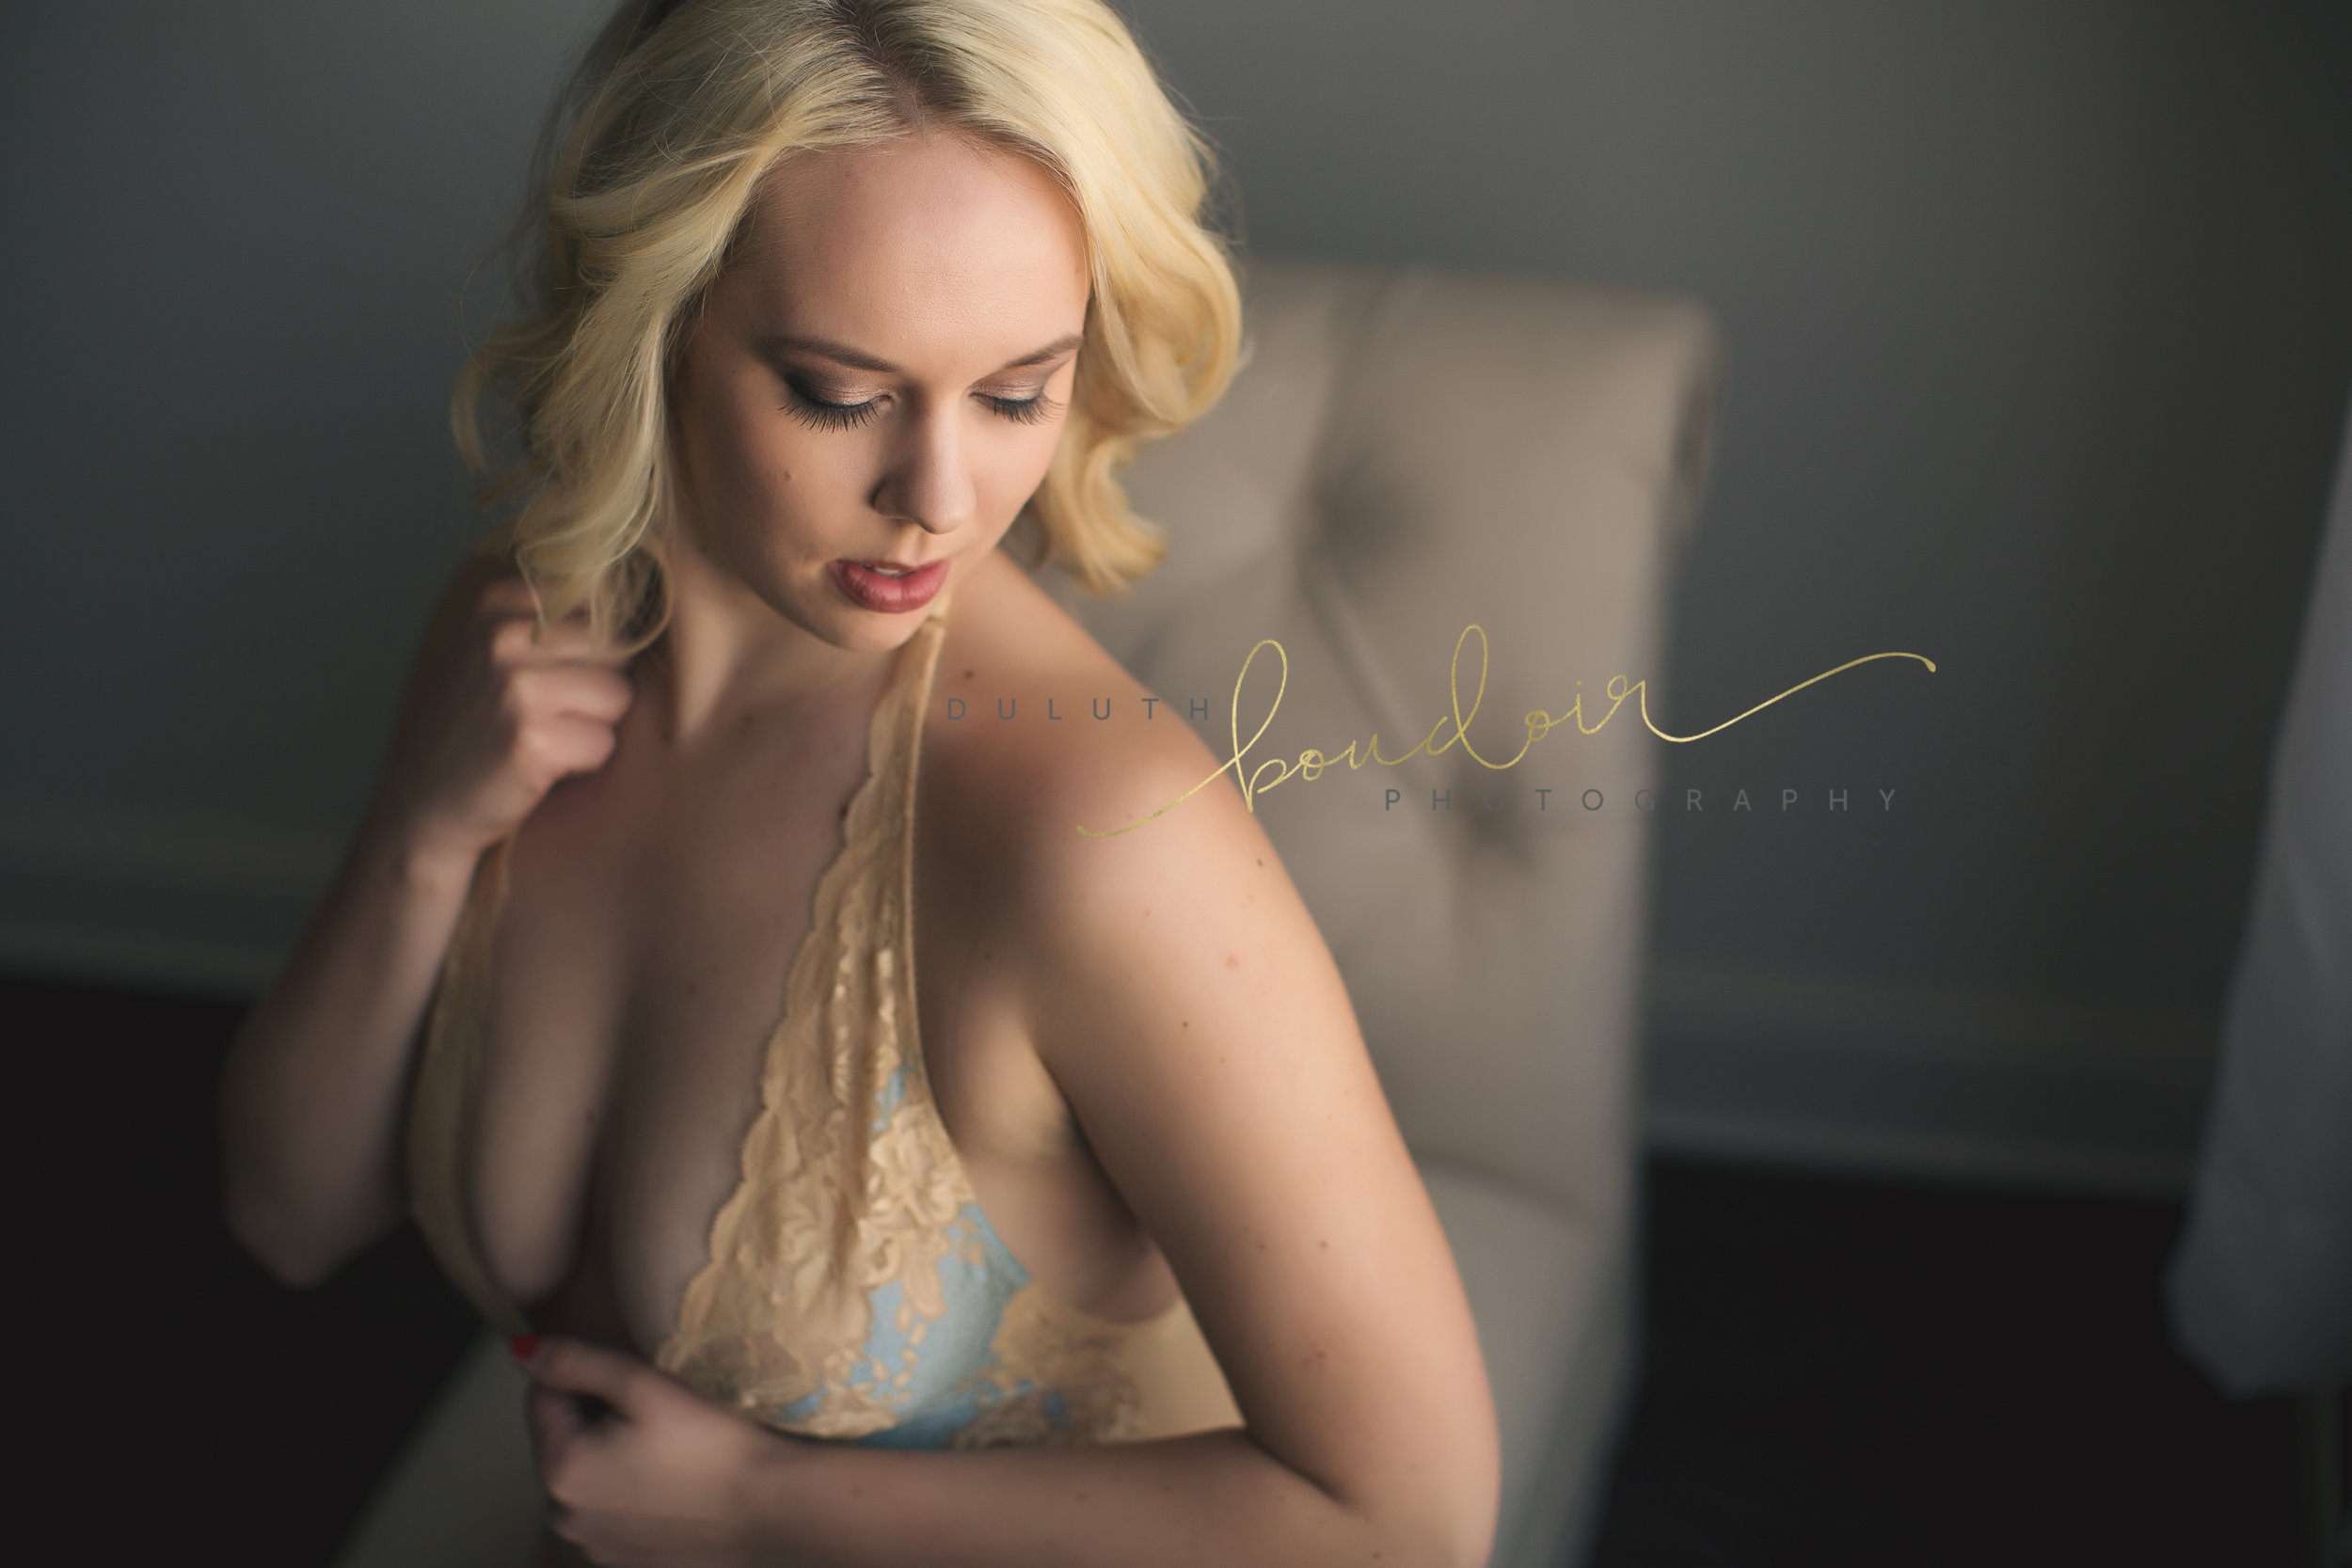 Yandy lingerie photographed by Duluth Boudoir Photography by Mad Chicken Studio   photographer Jes Hayes